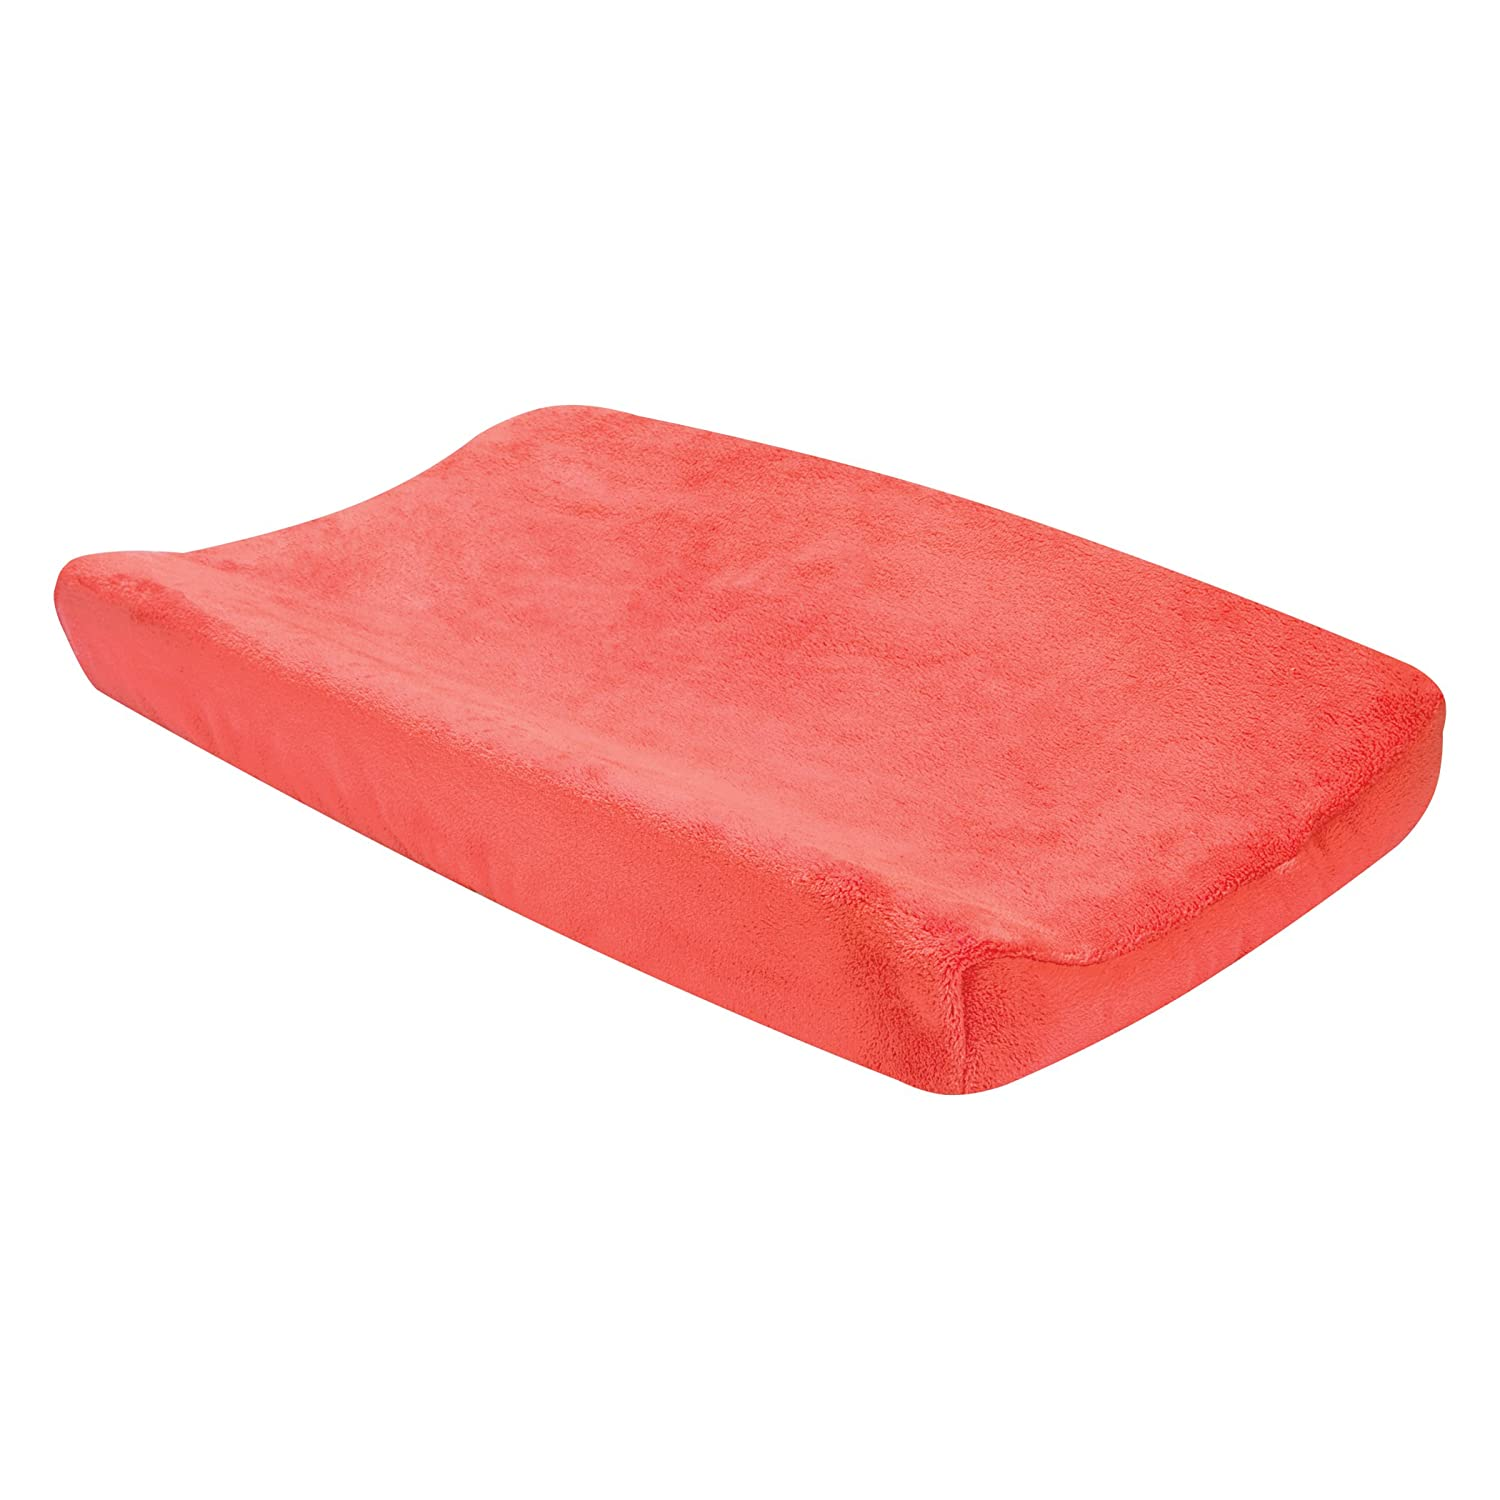 Trend Lab Porcelain Rose Coral Plush Changing Pad Cover, Coral 102693